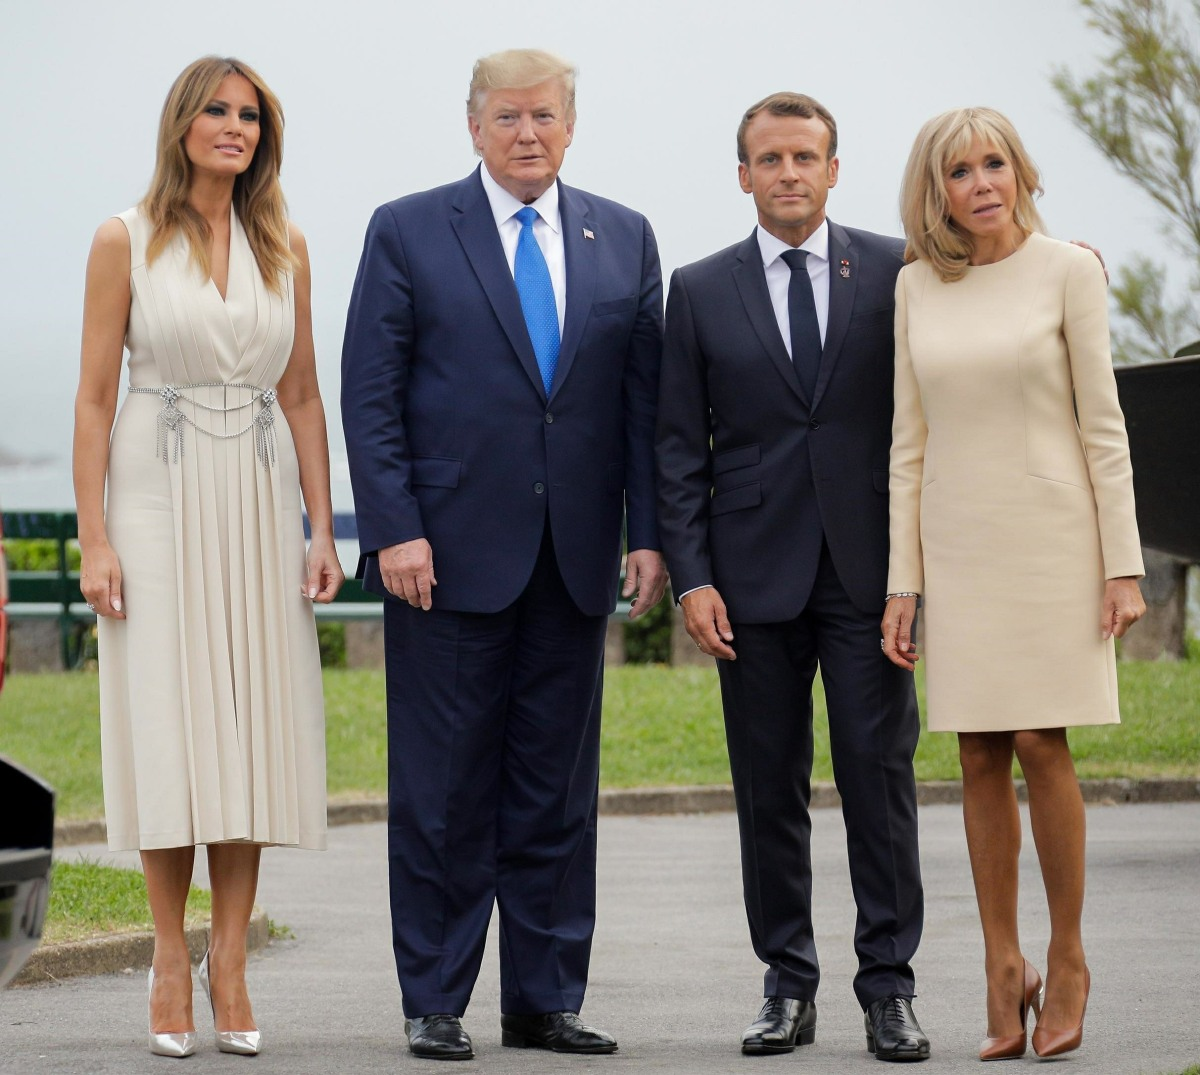 French President Emmanuel Macron and his wife, First Lady Brigitte Macron at the reception for the G7 summit in Biarritz